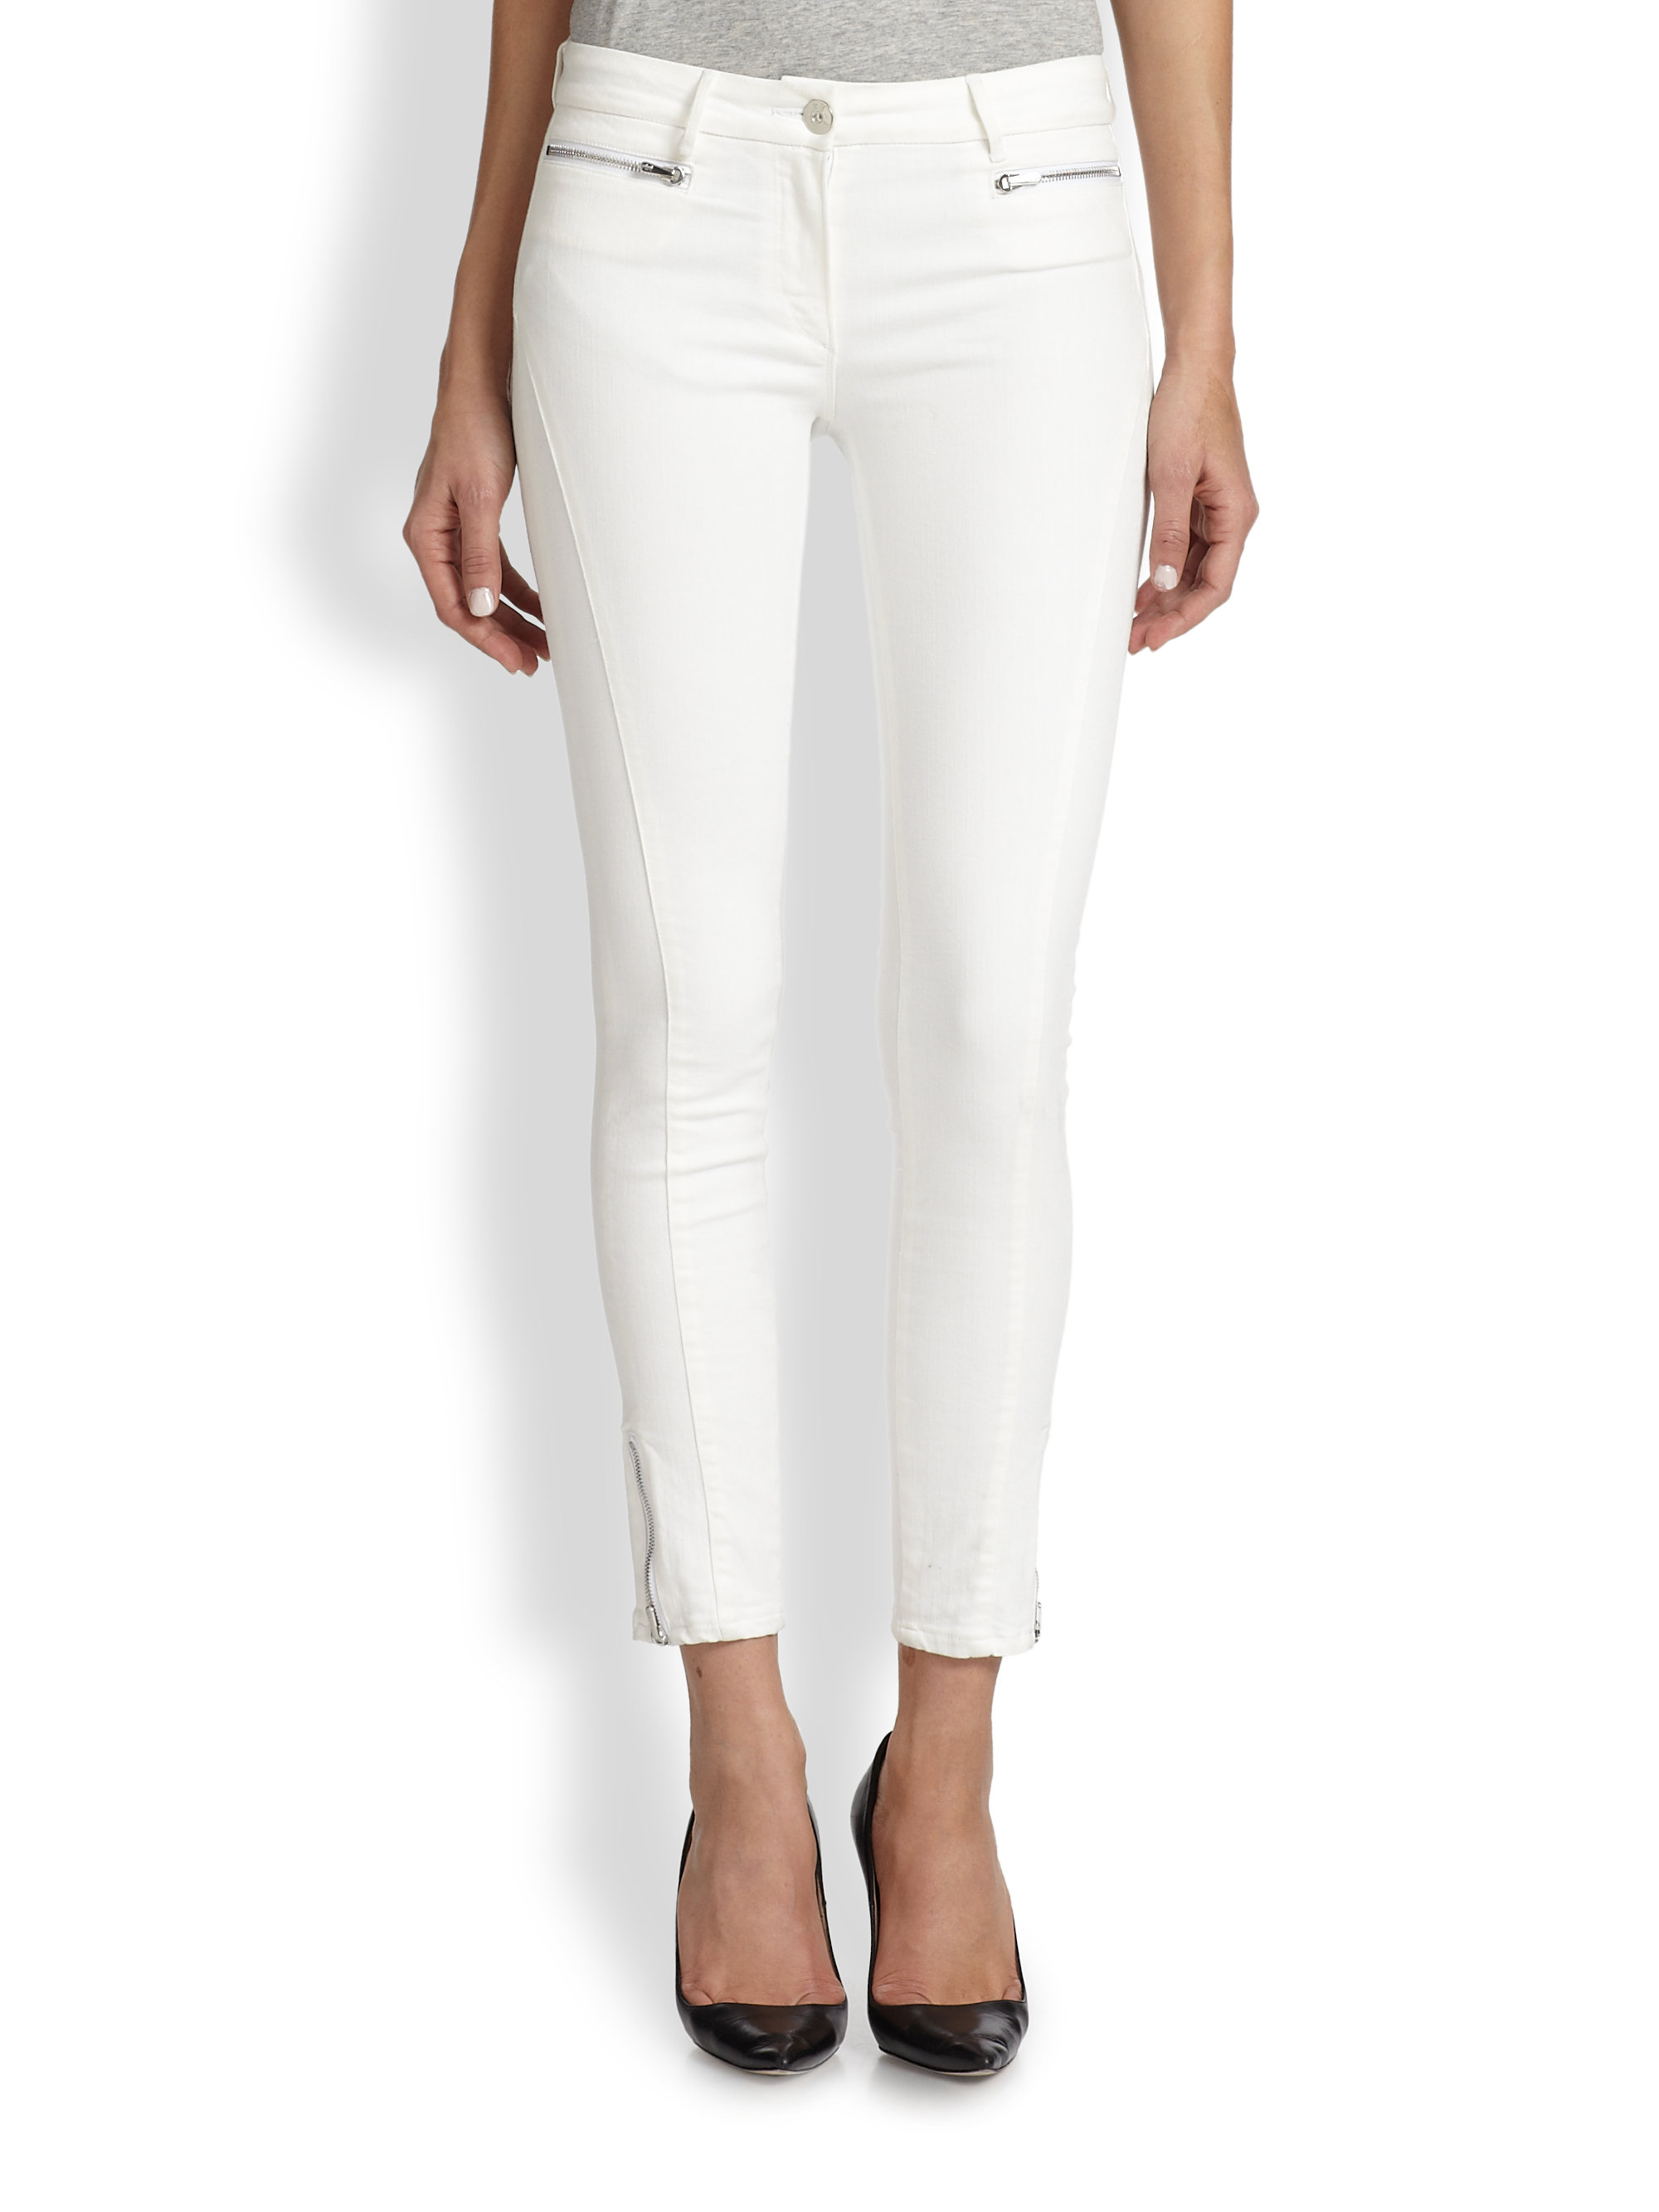 3x1 Ankle-Zip Skinny Jeans in White | Lyst